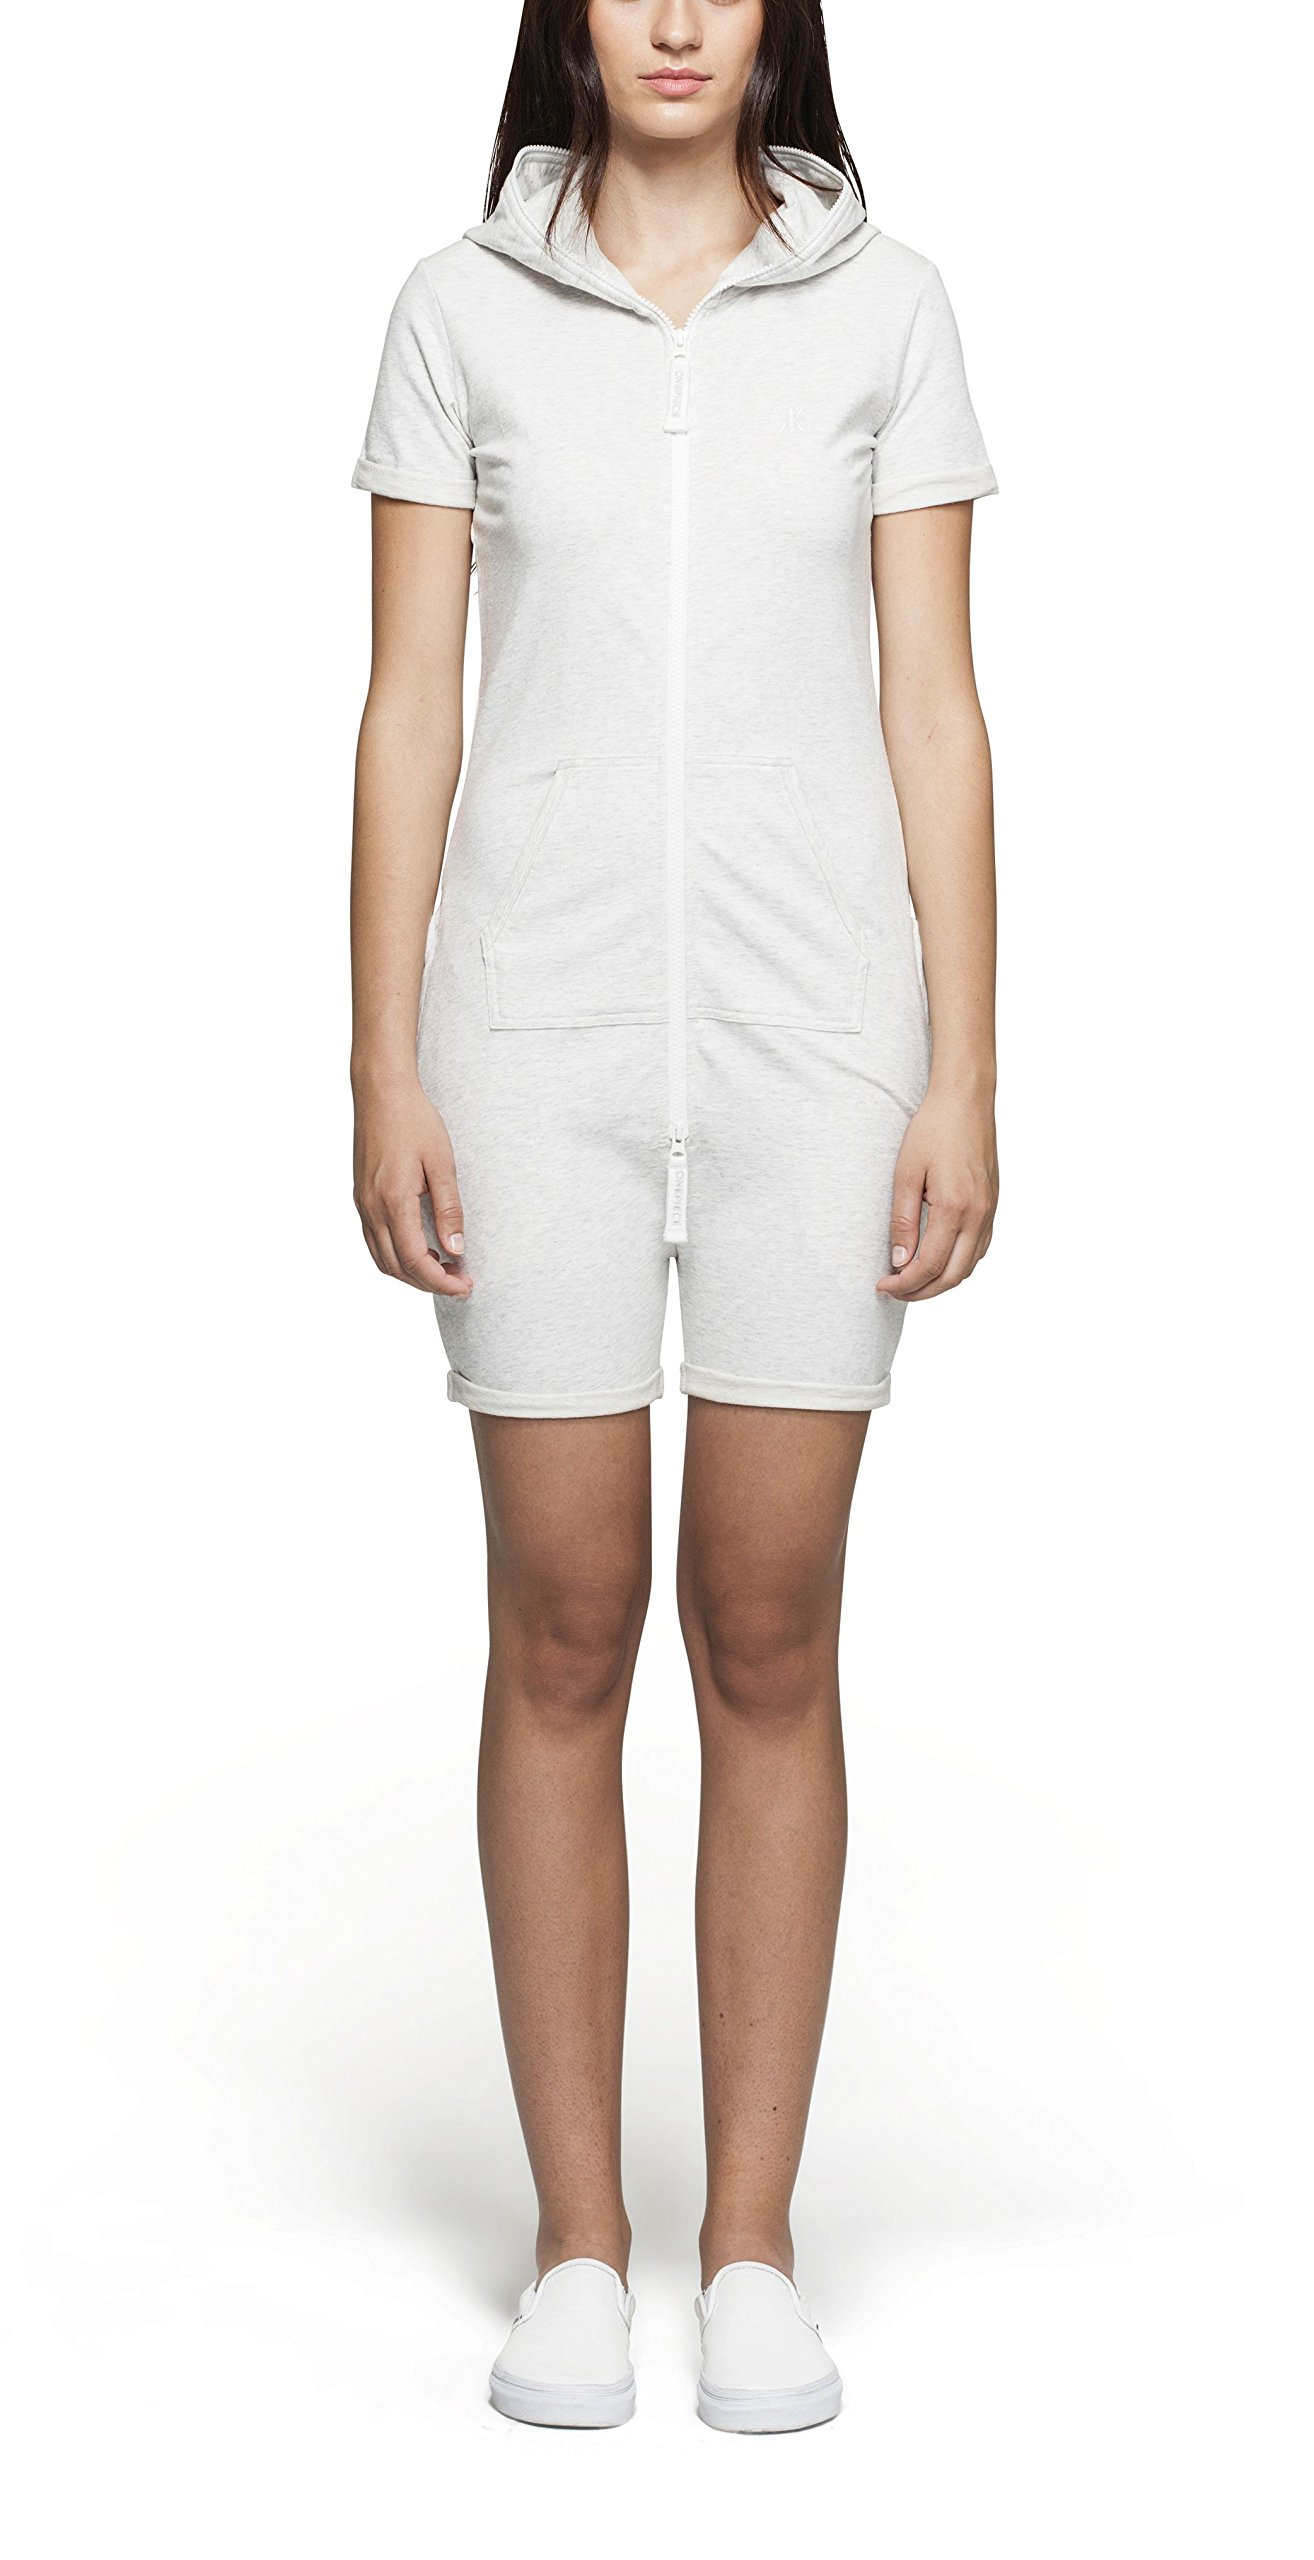 White Fitted FabricantLFemme One CombinaisonBlancschnee Snow Piece Short Mel42taille Onepiece e9IWED2YH